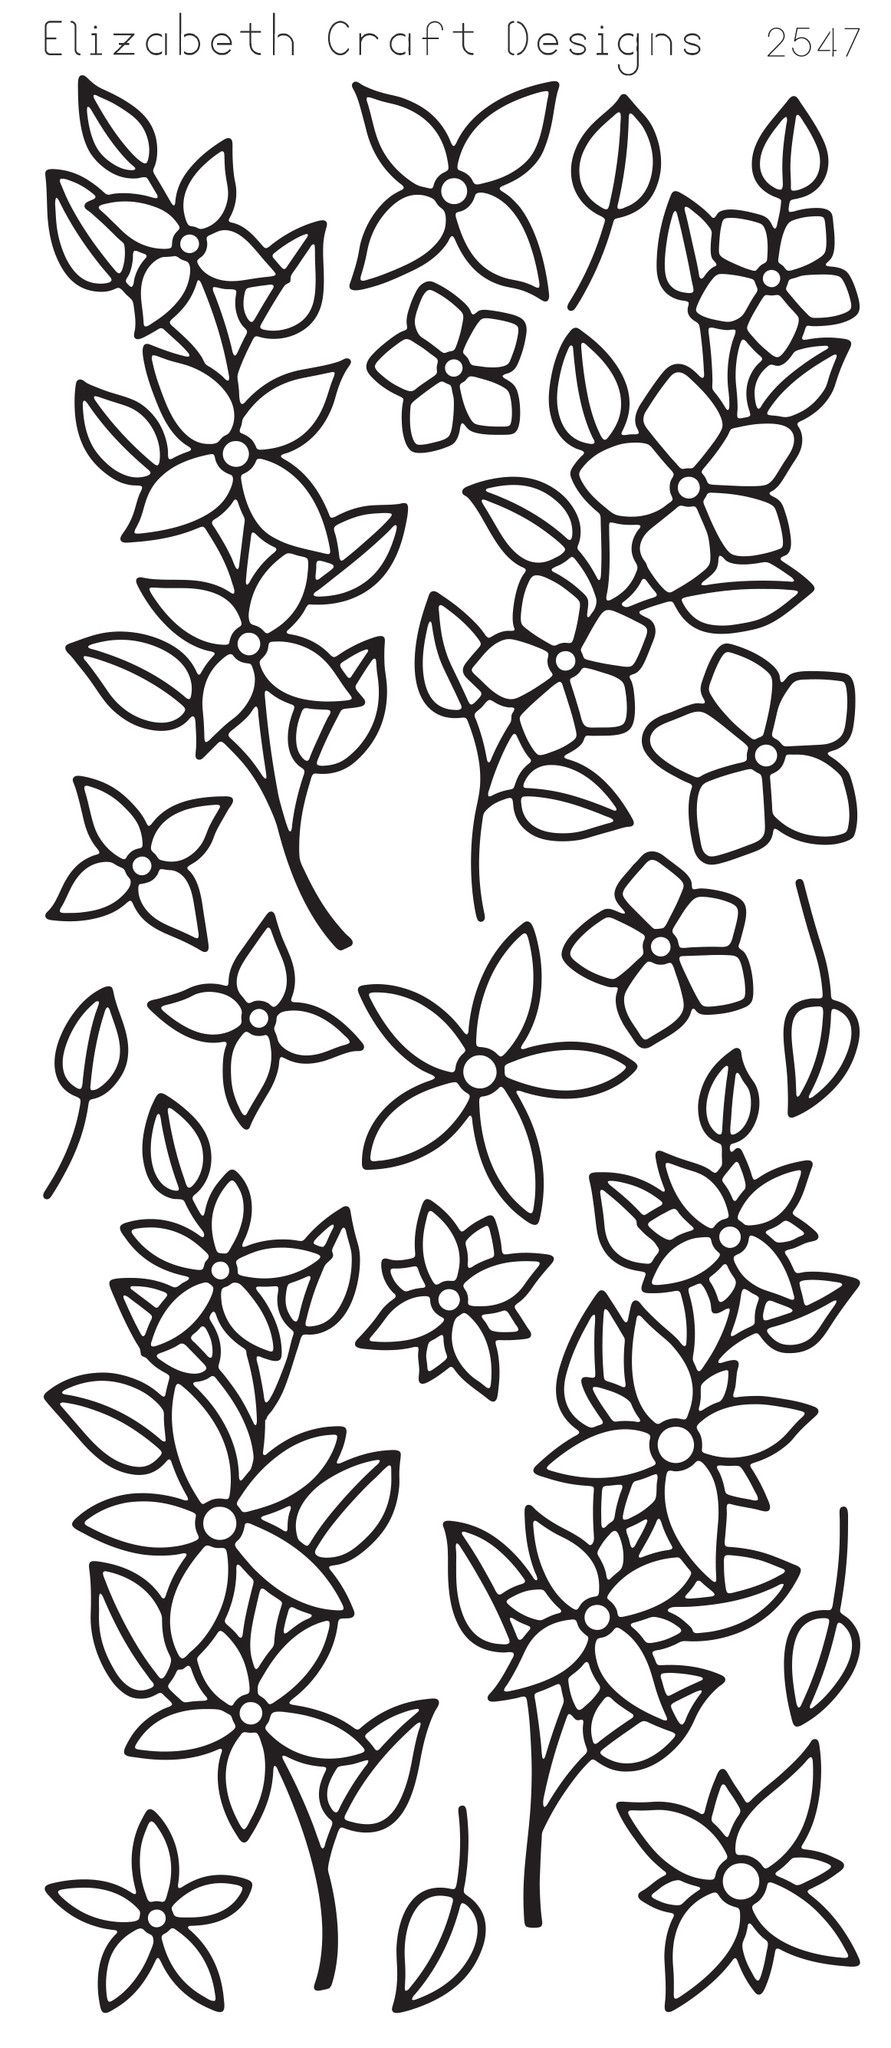 Butterfly Vine Coloring Page Google Search Elizabeth Craft